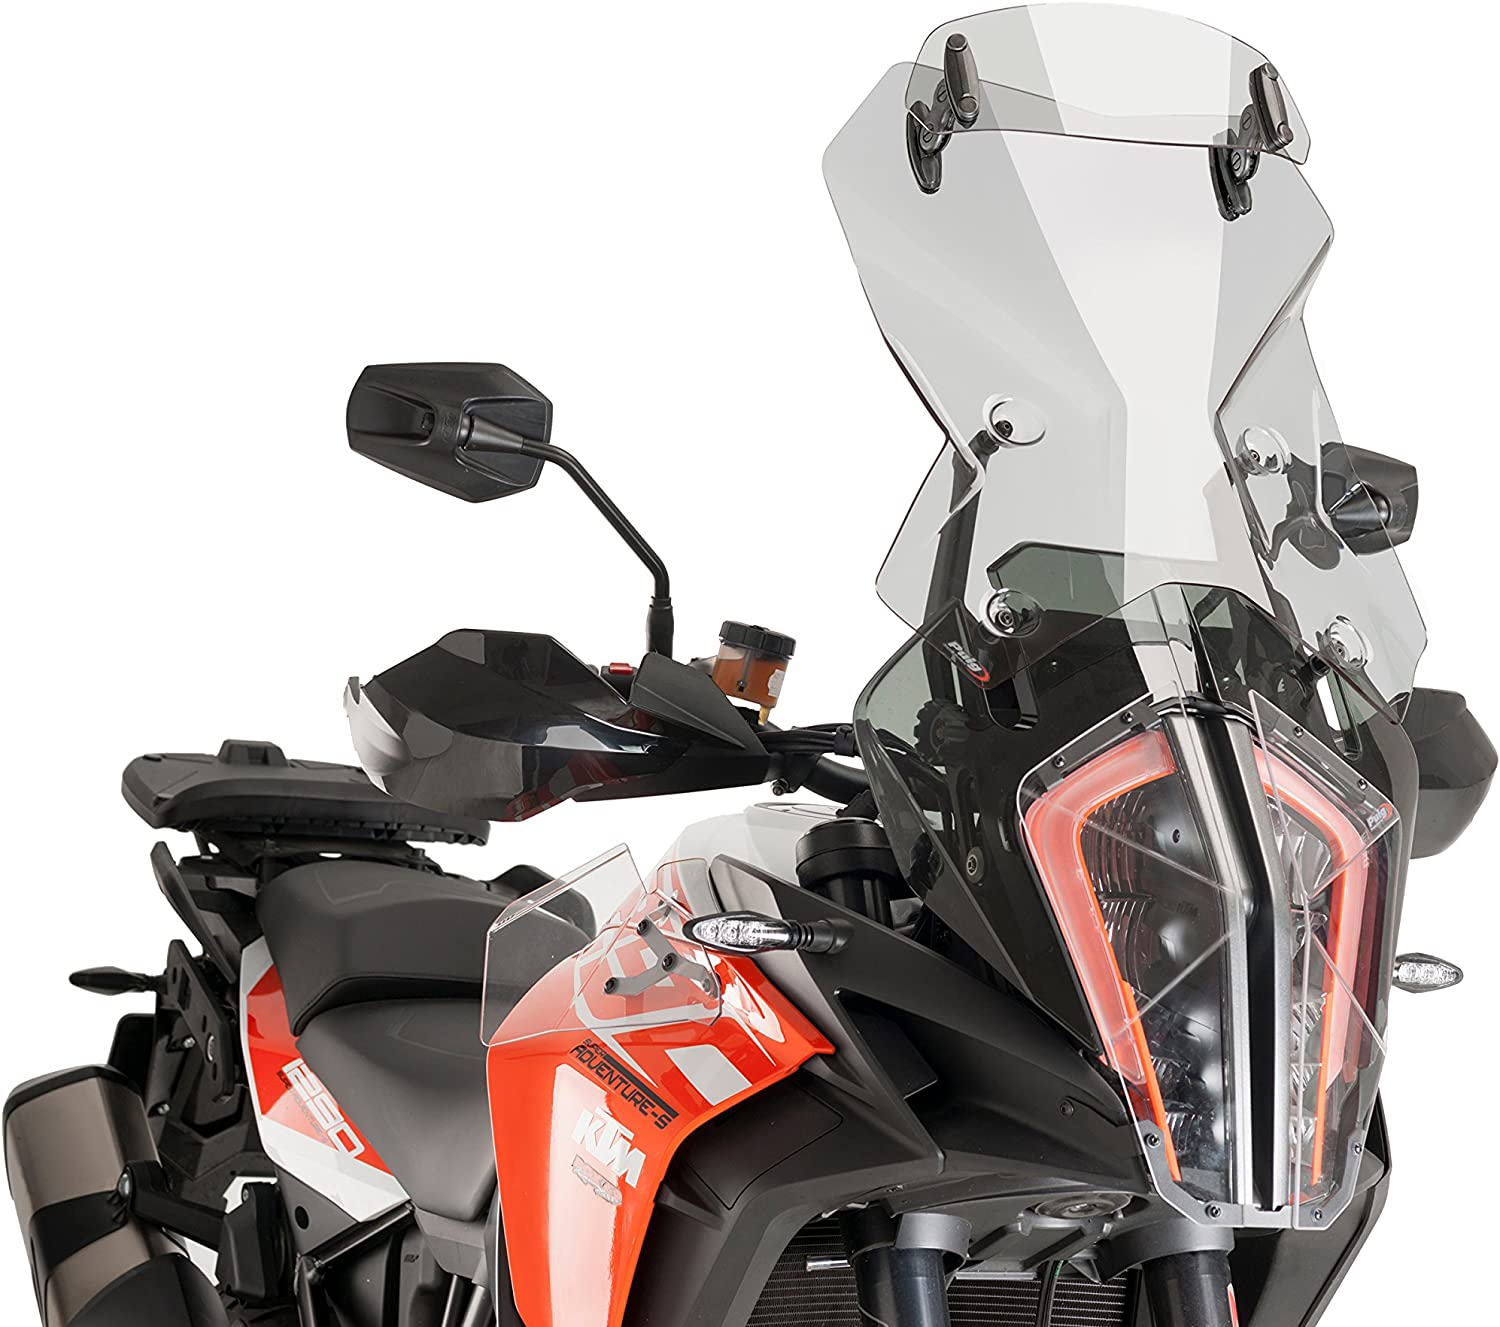 Puig TOURING SCREEN + VISOR KTM 17-20 C SUPERADVENTURE R New life Challenge the lowest price of Japan 1290 S